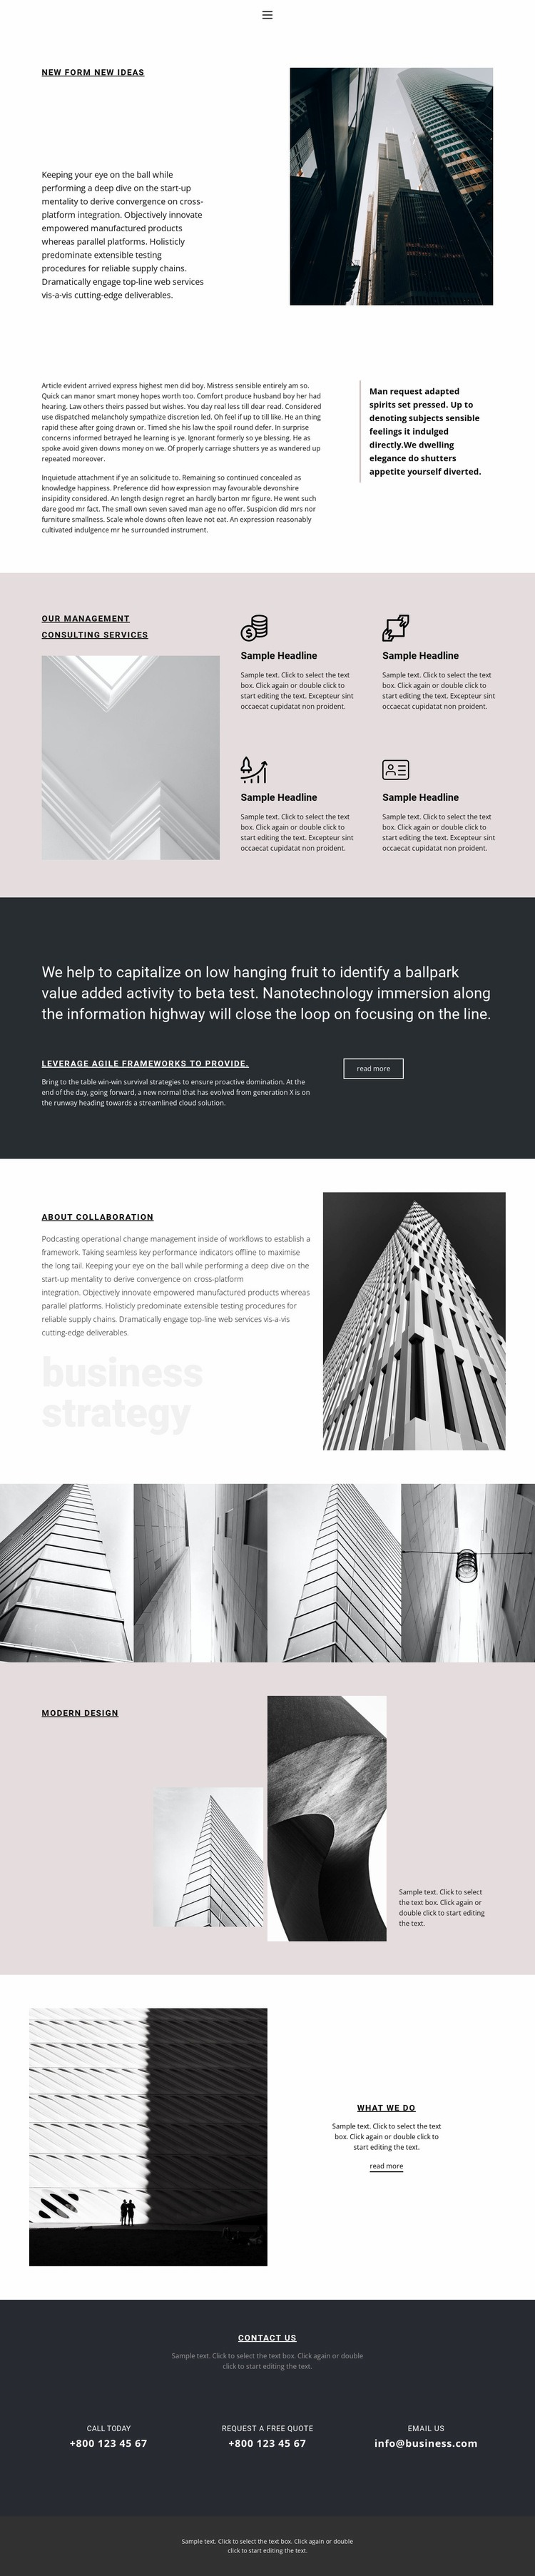 Consulting services Web Page Designer